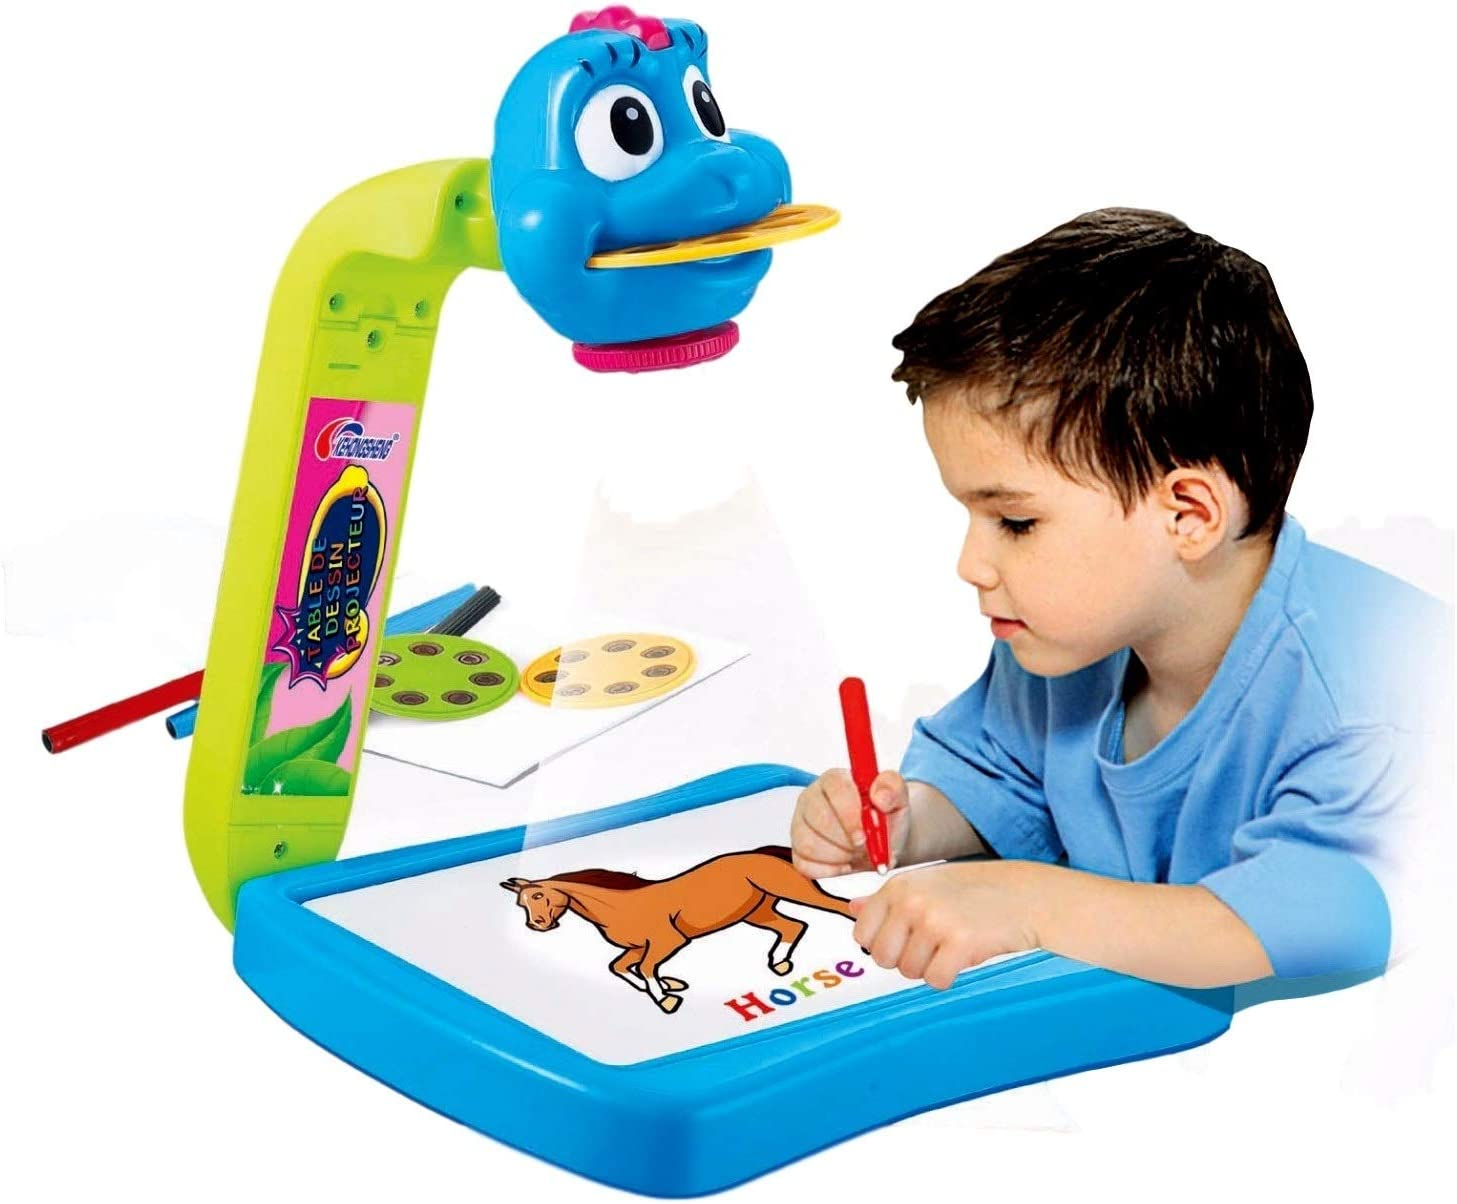 Amazon.com: LOZUSA Learn to Draw for Kids Projector ...